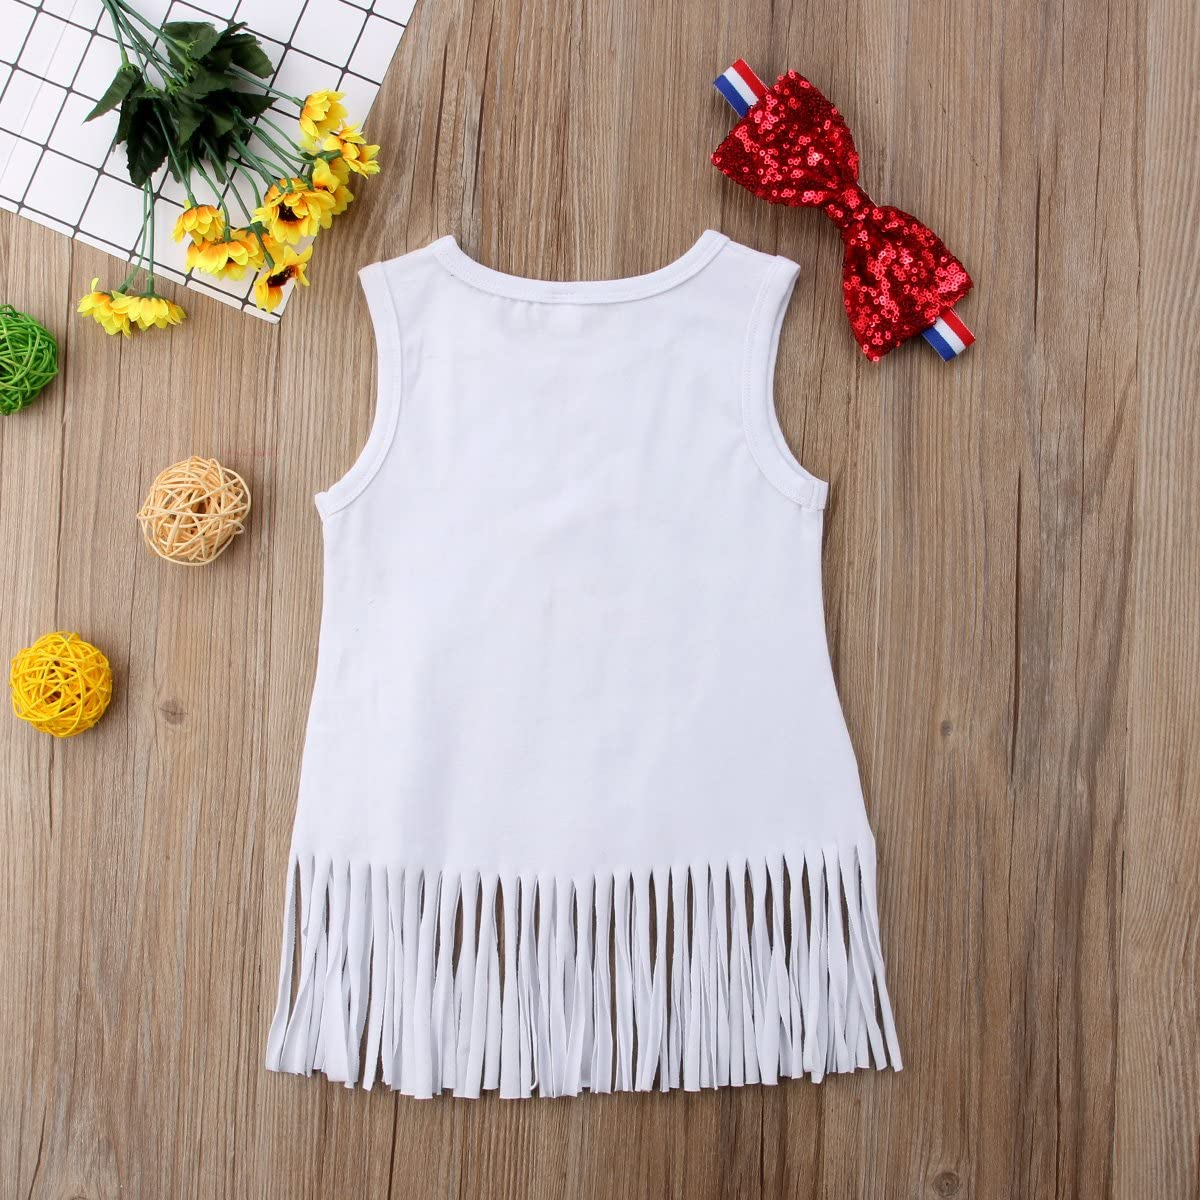 BiggerStore Baby Girls Sleeveless Tassel Freedom Top Dress with Headband 4th of July Outfit